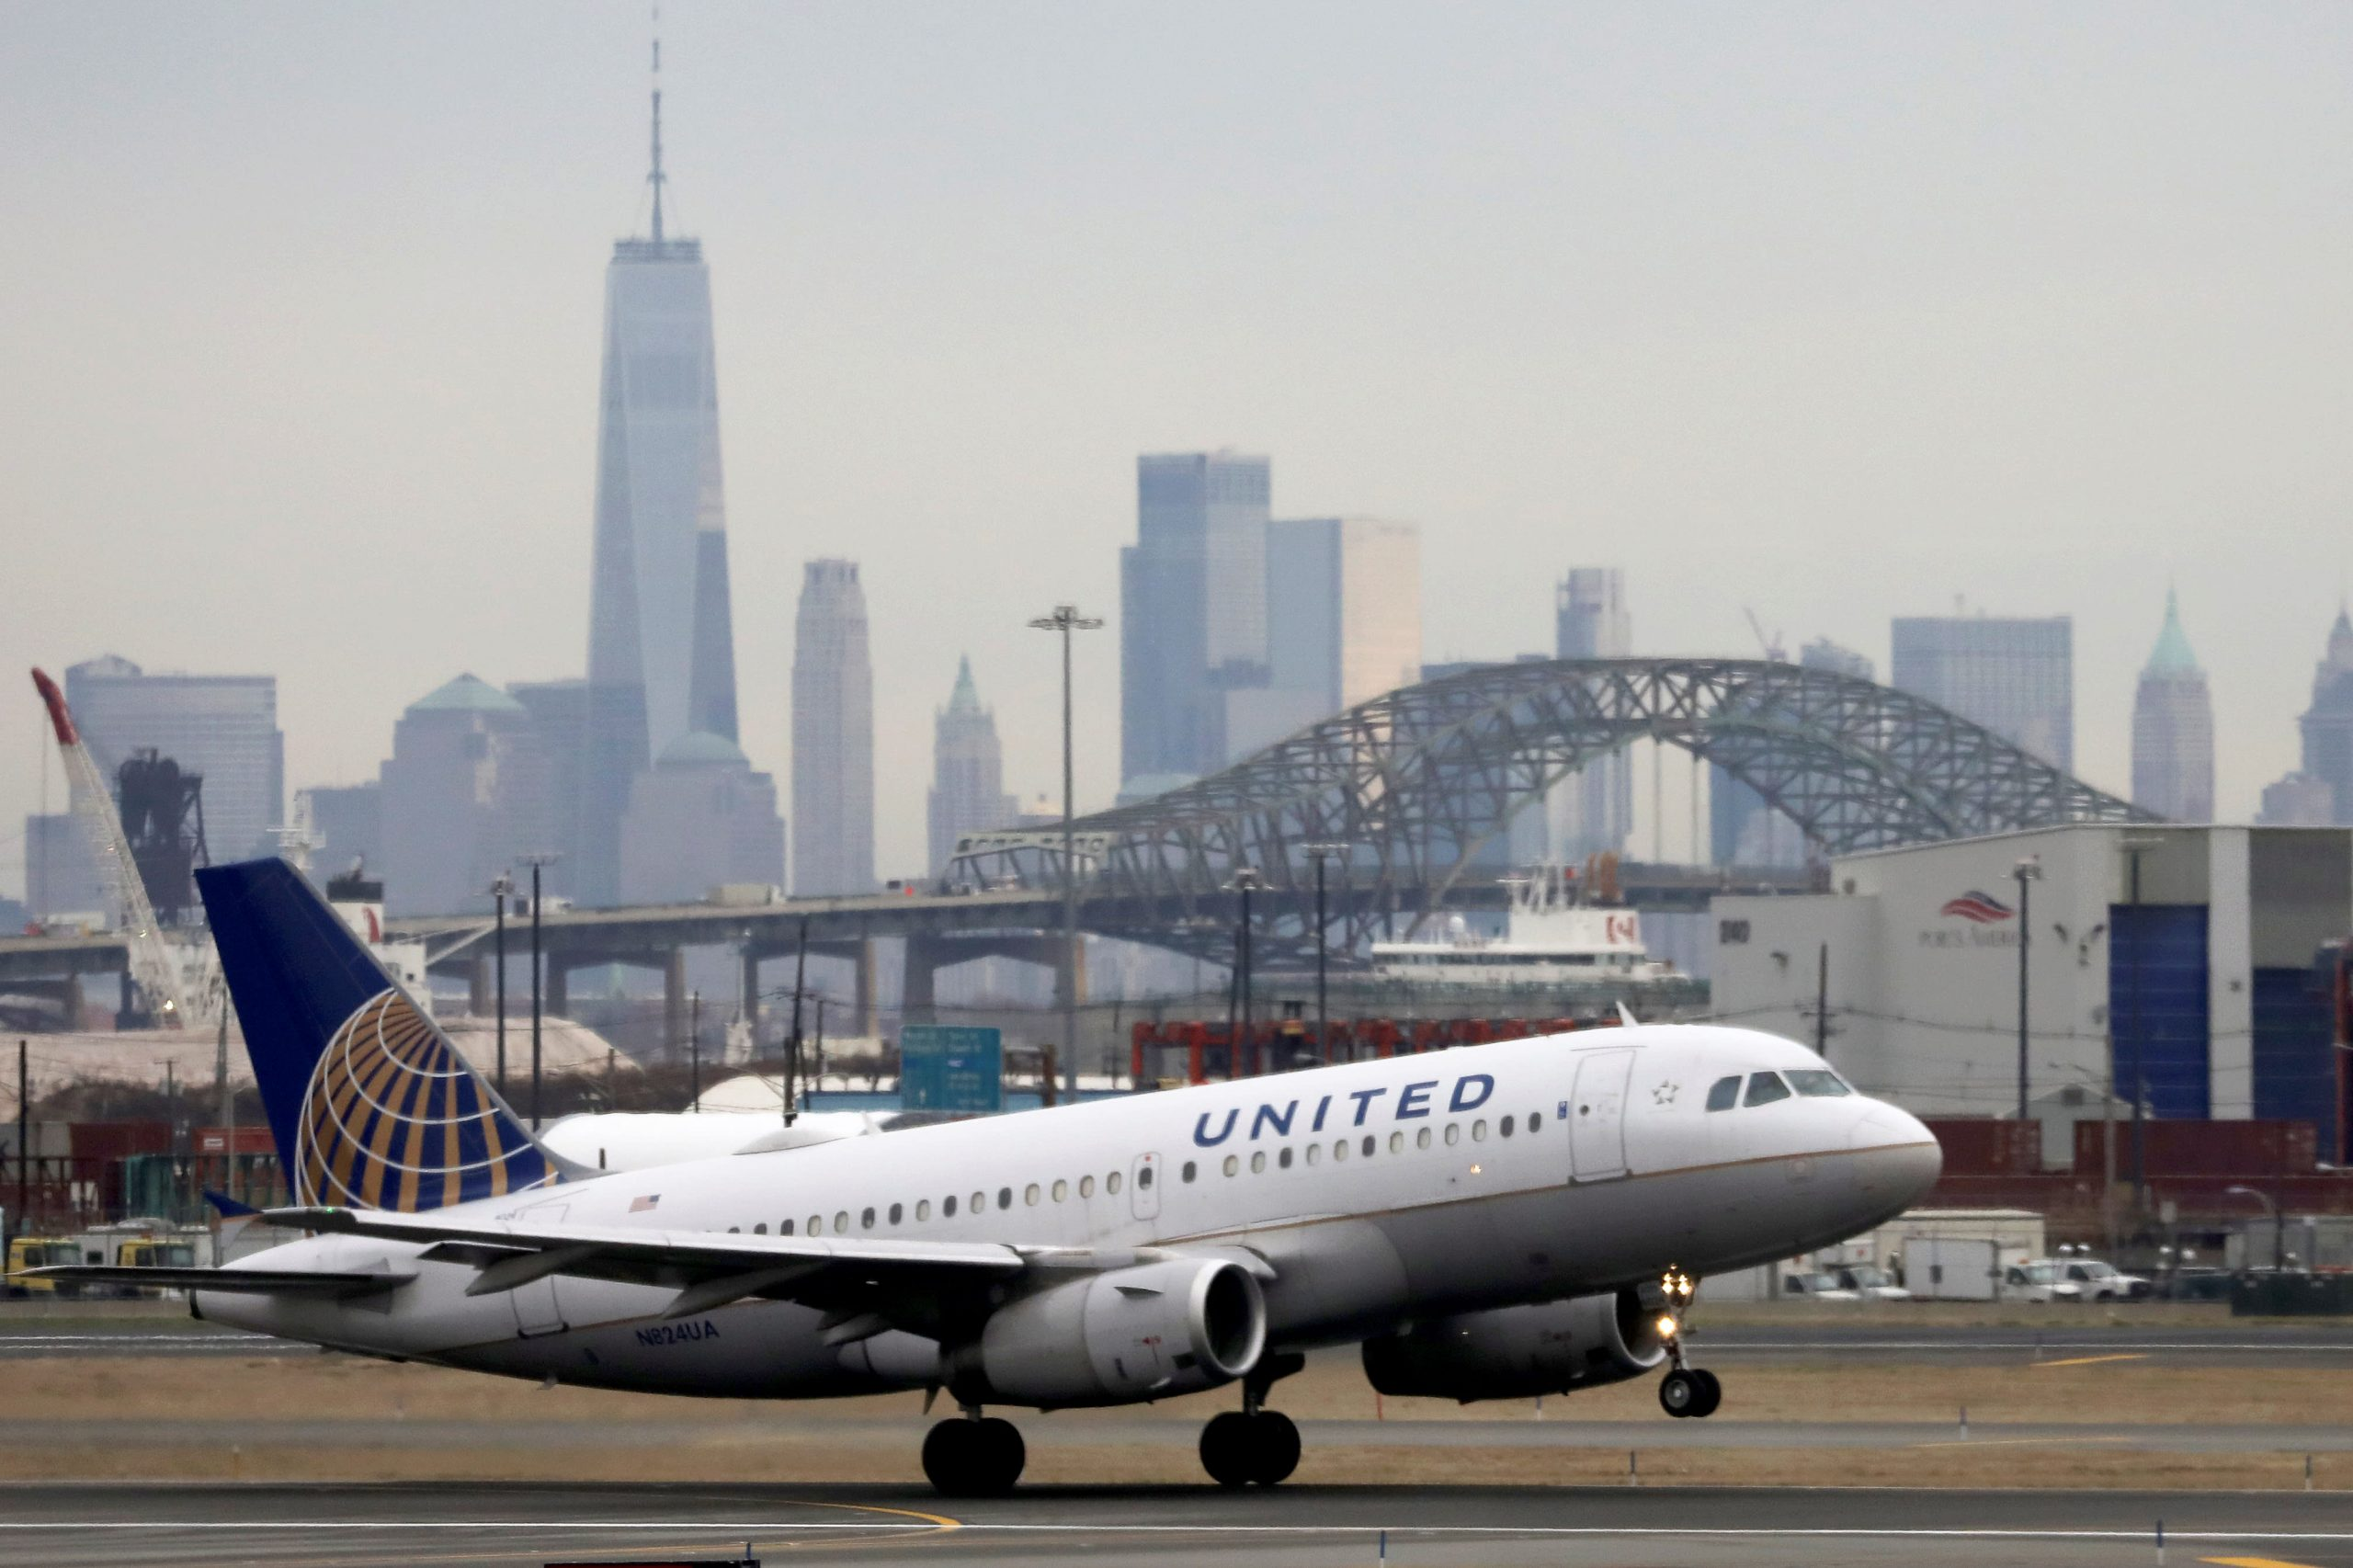 United Airlines adds over 1,400 flights due to Thanksgiving travel demand